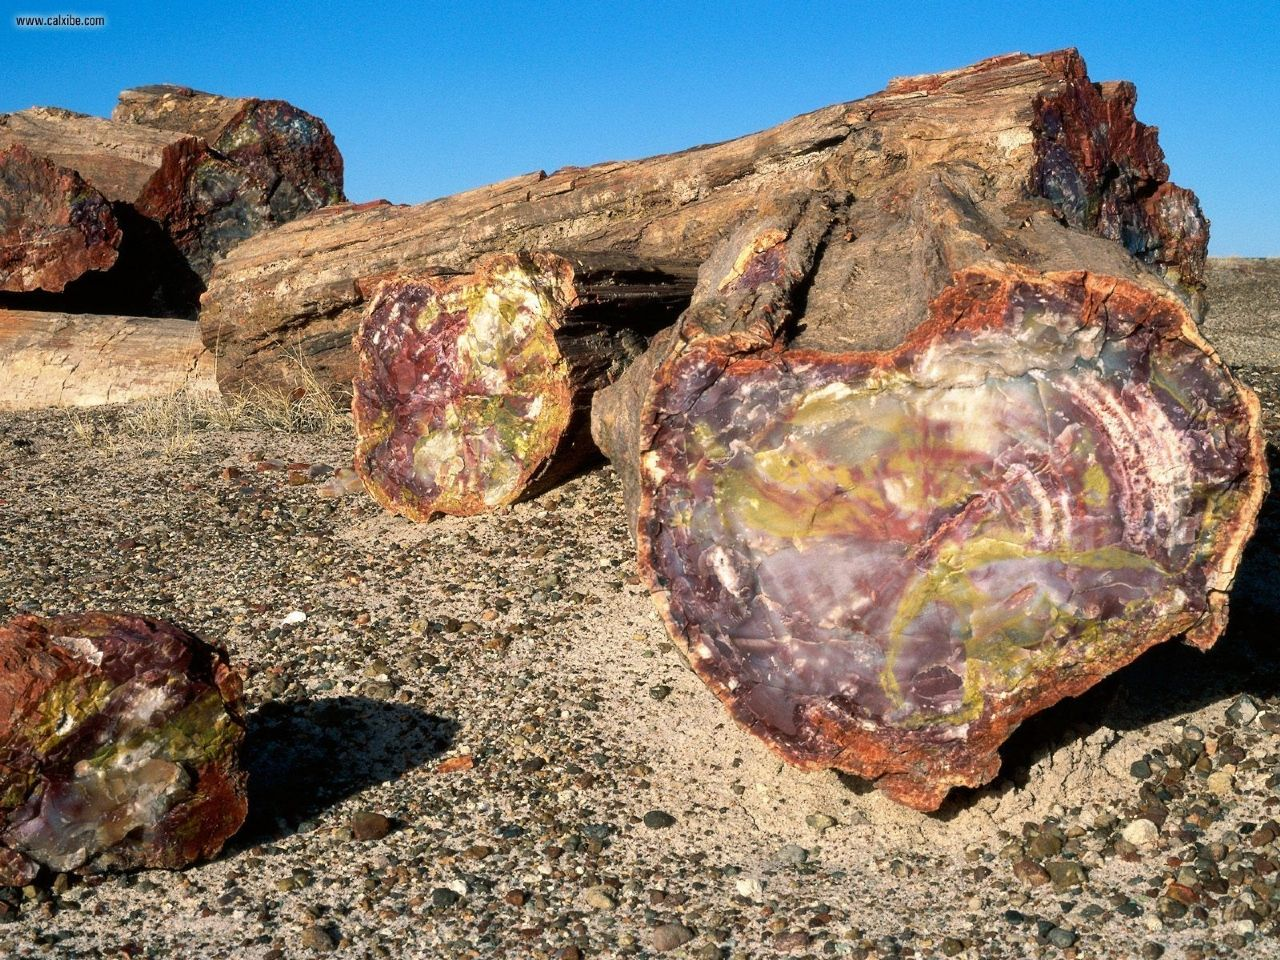 Arizona's Petrified Forest